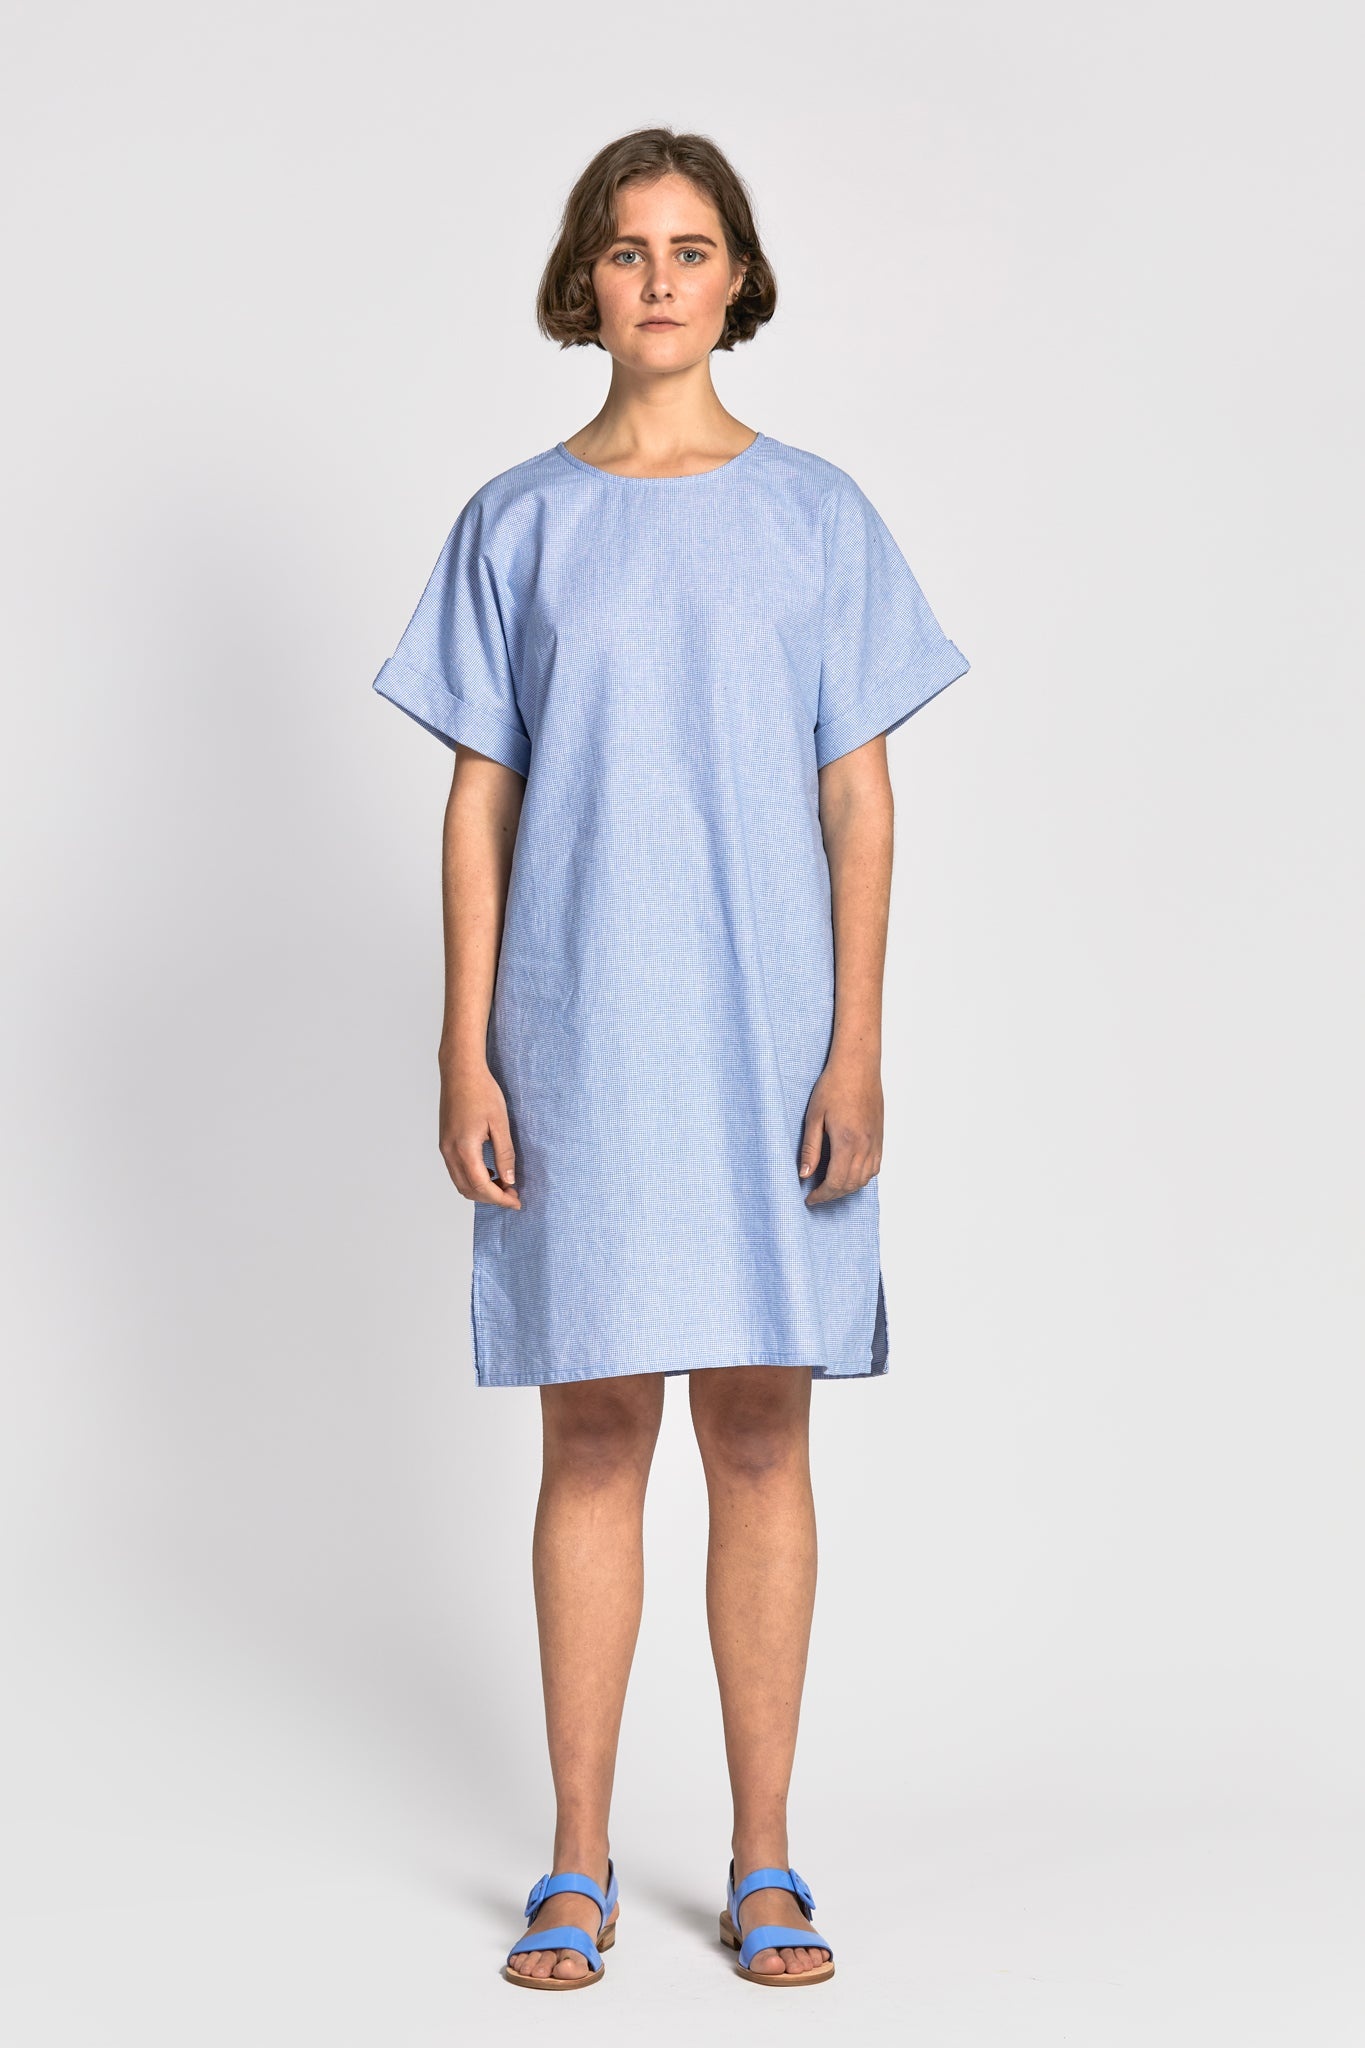 ping dress light blue